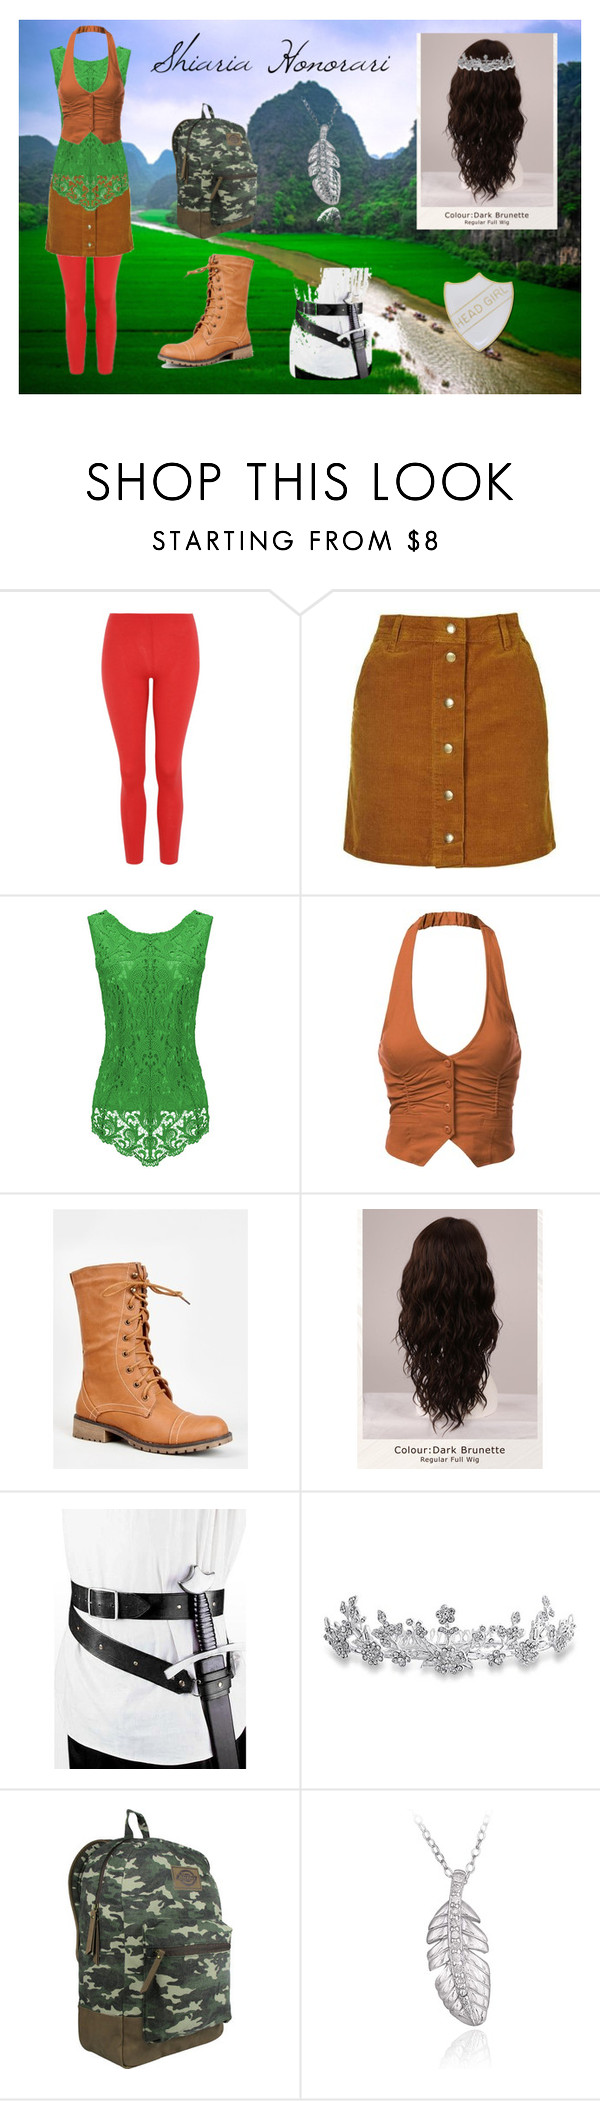 Shiari by solaceshadowhunter on Polyvore featuring J.TOMSON, Topshop, George, Nature Breeze, Dickies, DB Designs, Bling Jewelry and WigYouUp